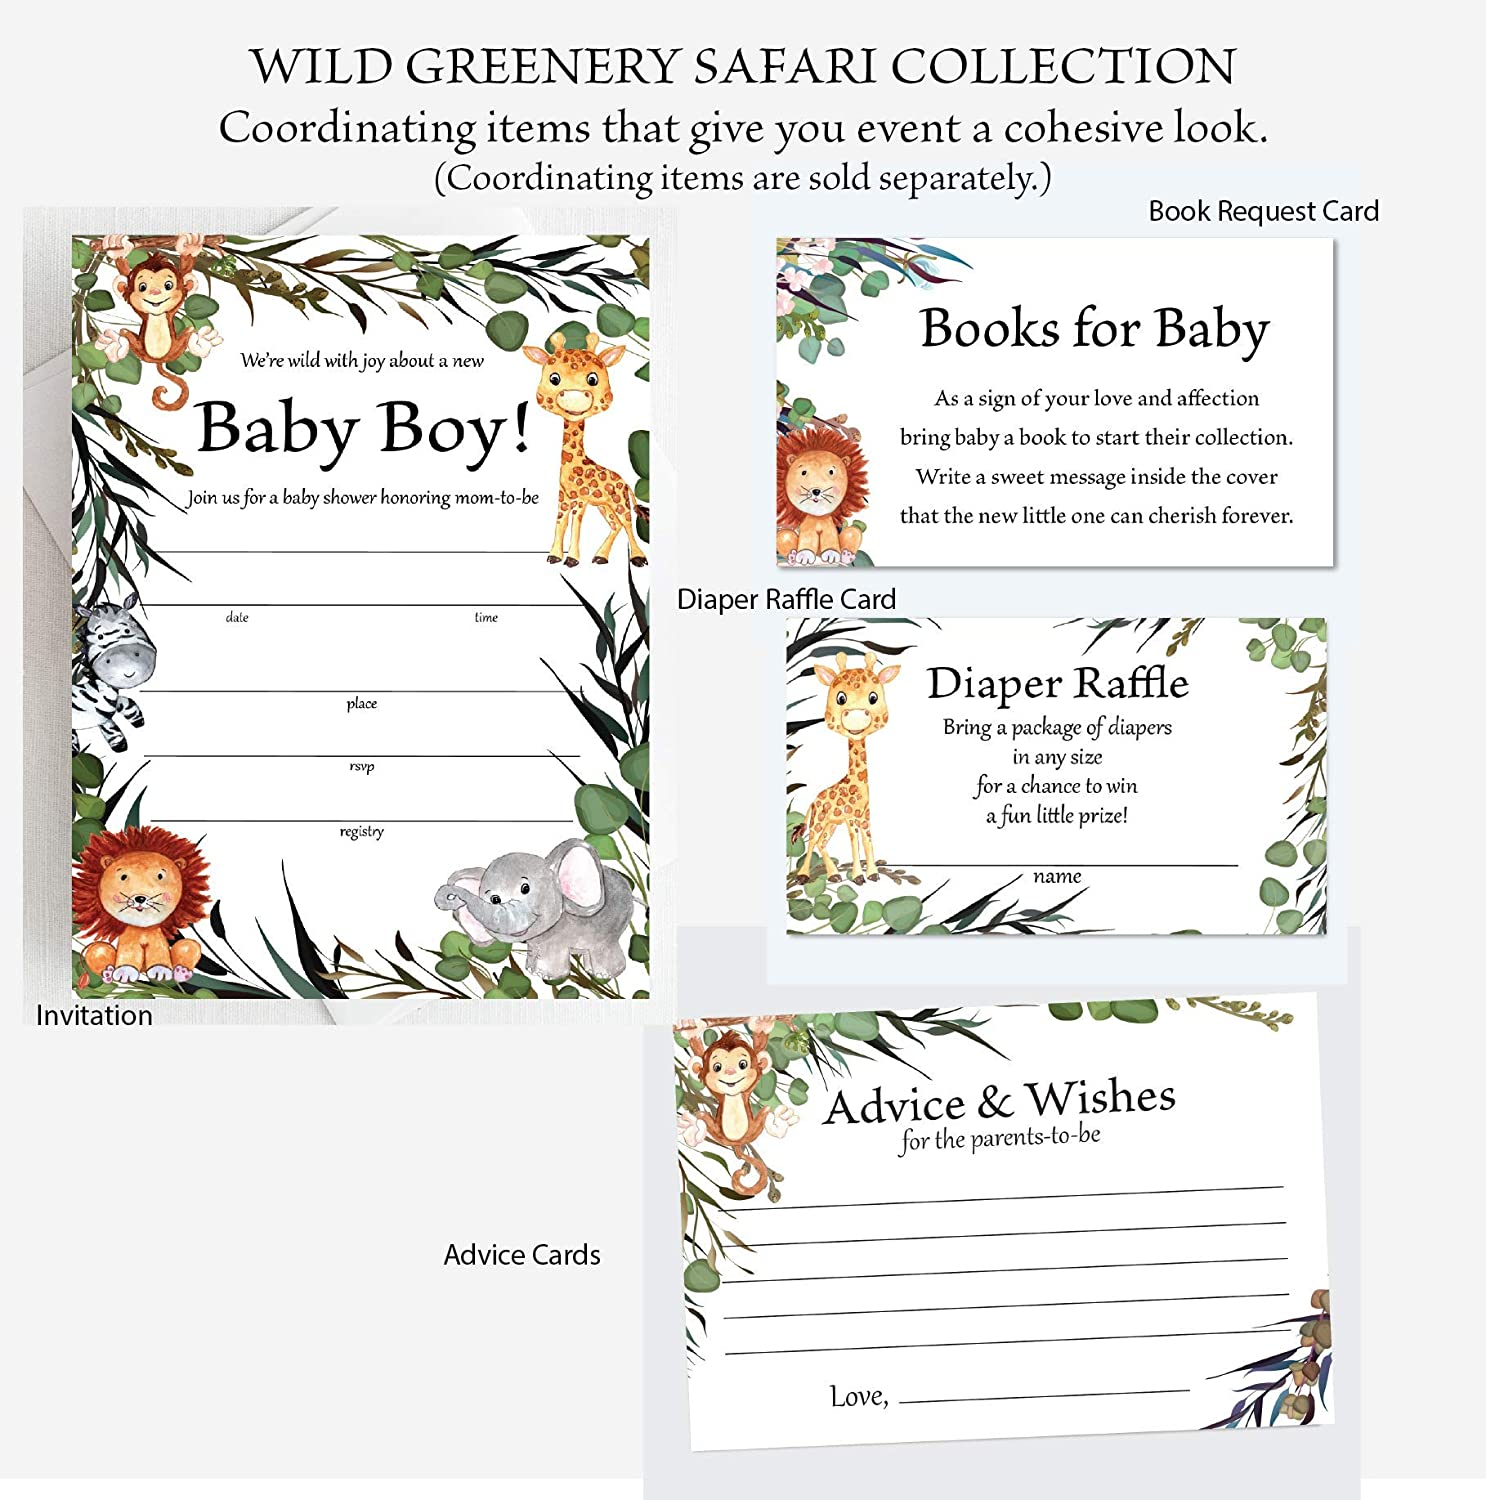 Words of Wisdom Baby Shower New Parents,yv856 Safari Baby Shower Advice Cards Baby Shower Games Printable Advice for Parents To Be